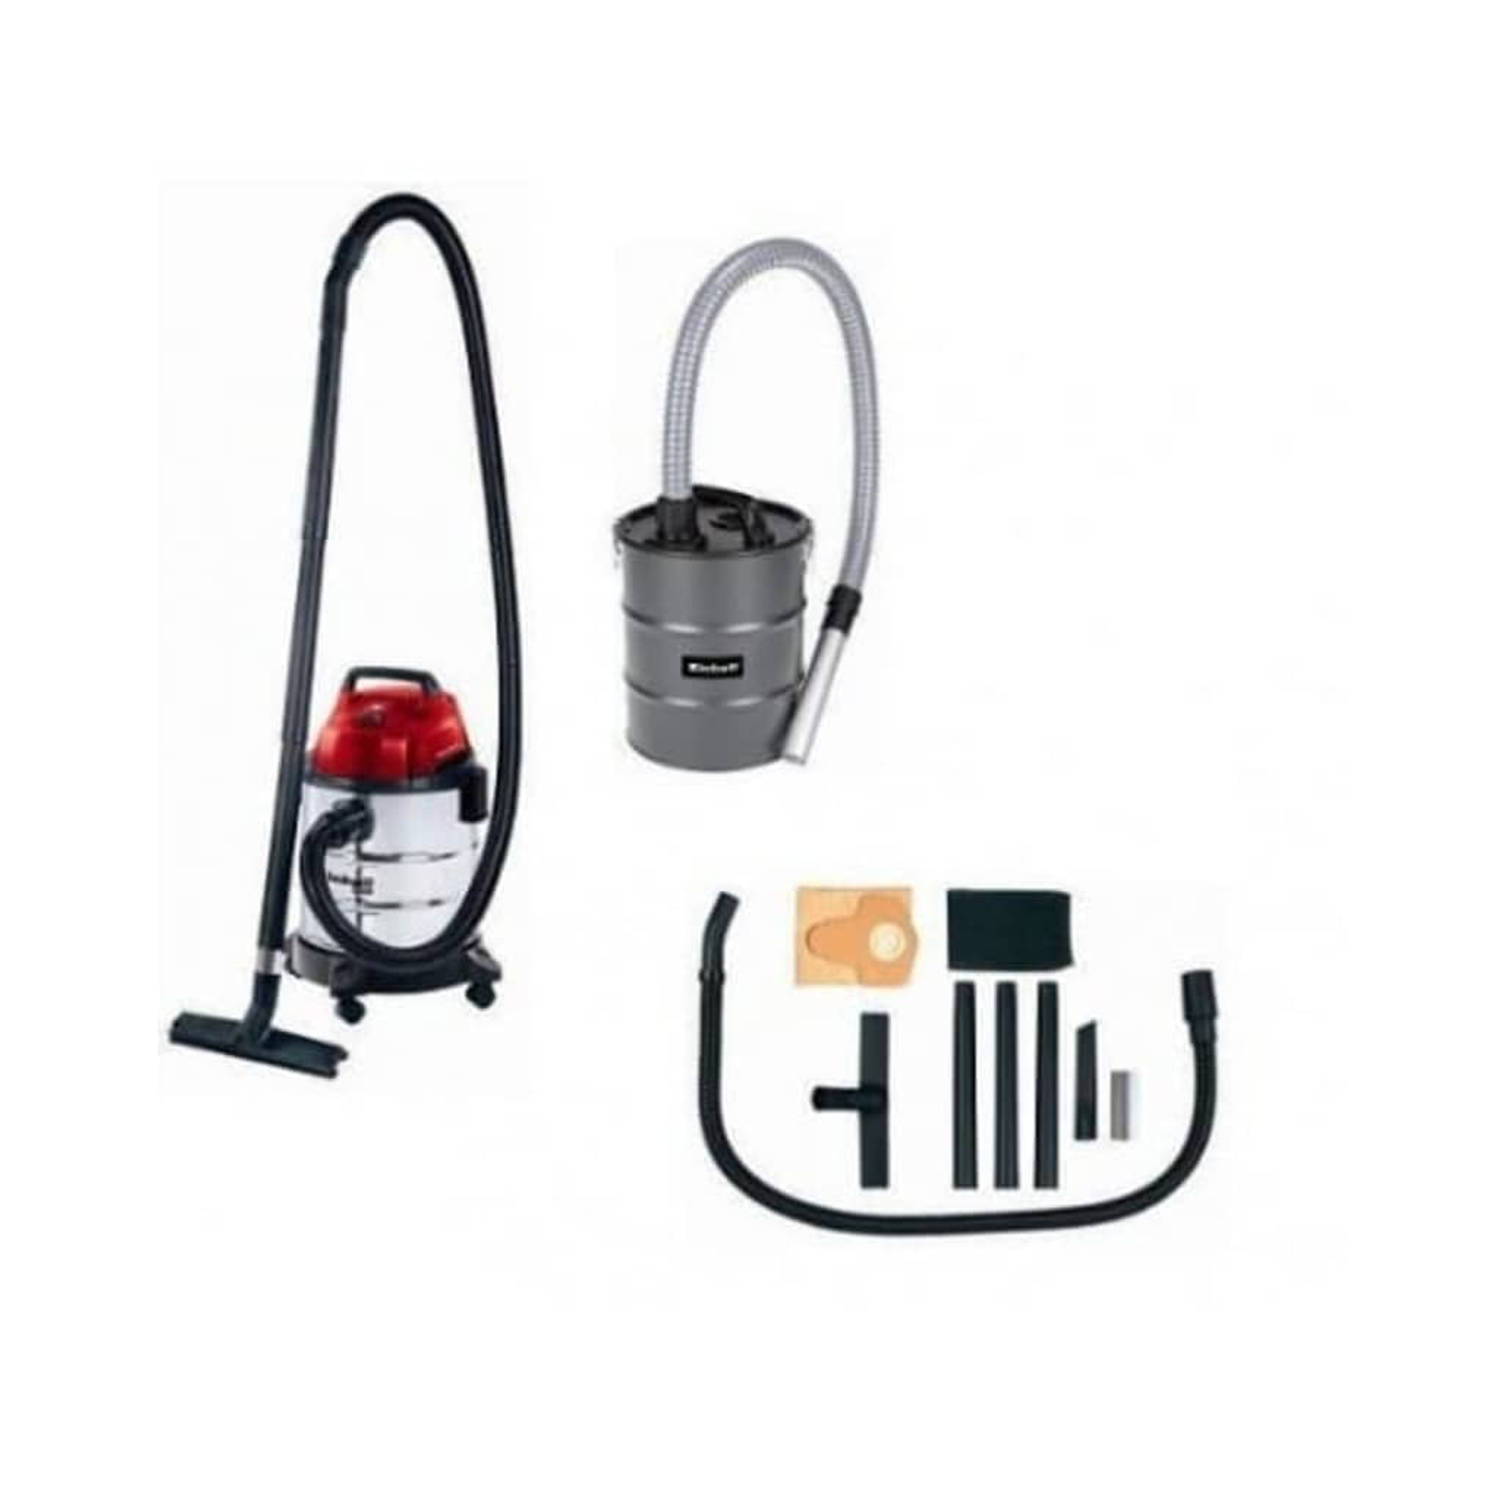 Einhell nat-/droogzuiger TH-VC 1820 S Kit